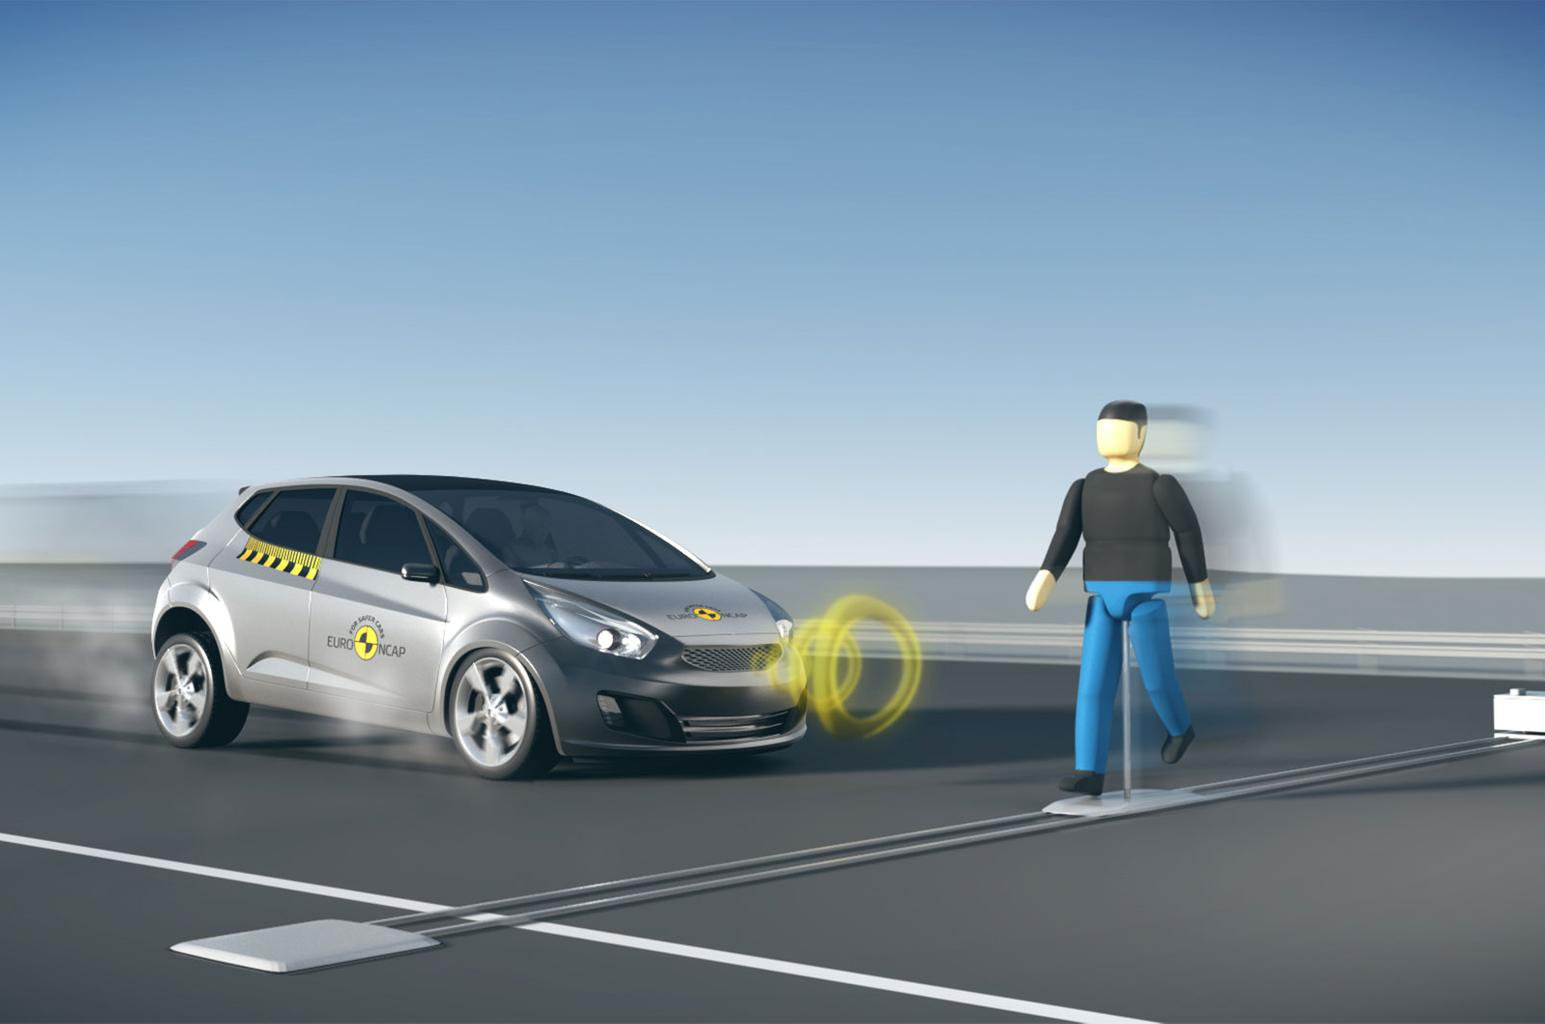 The game-changers in Euro NCAP crash tests